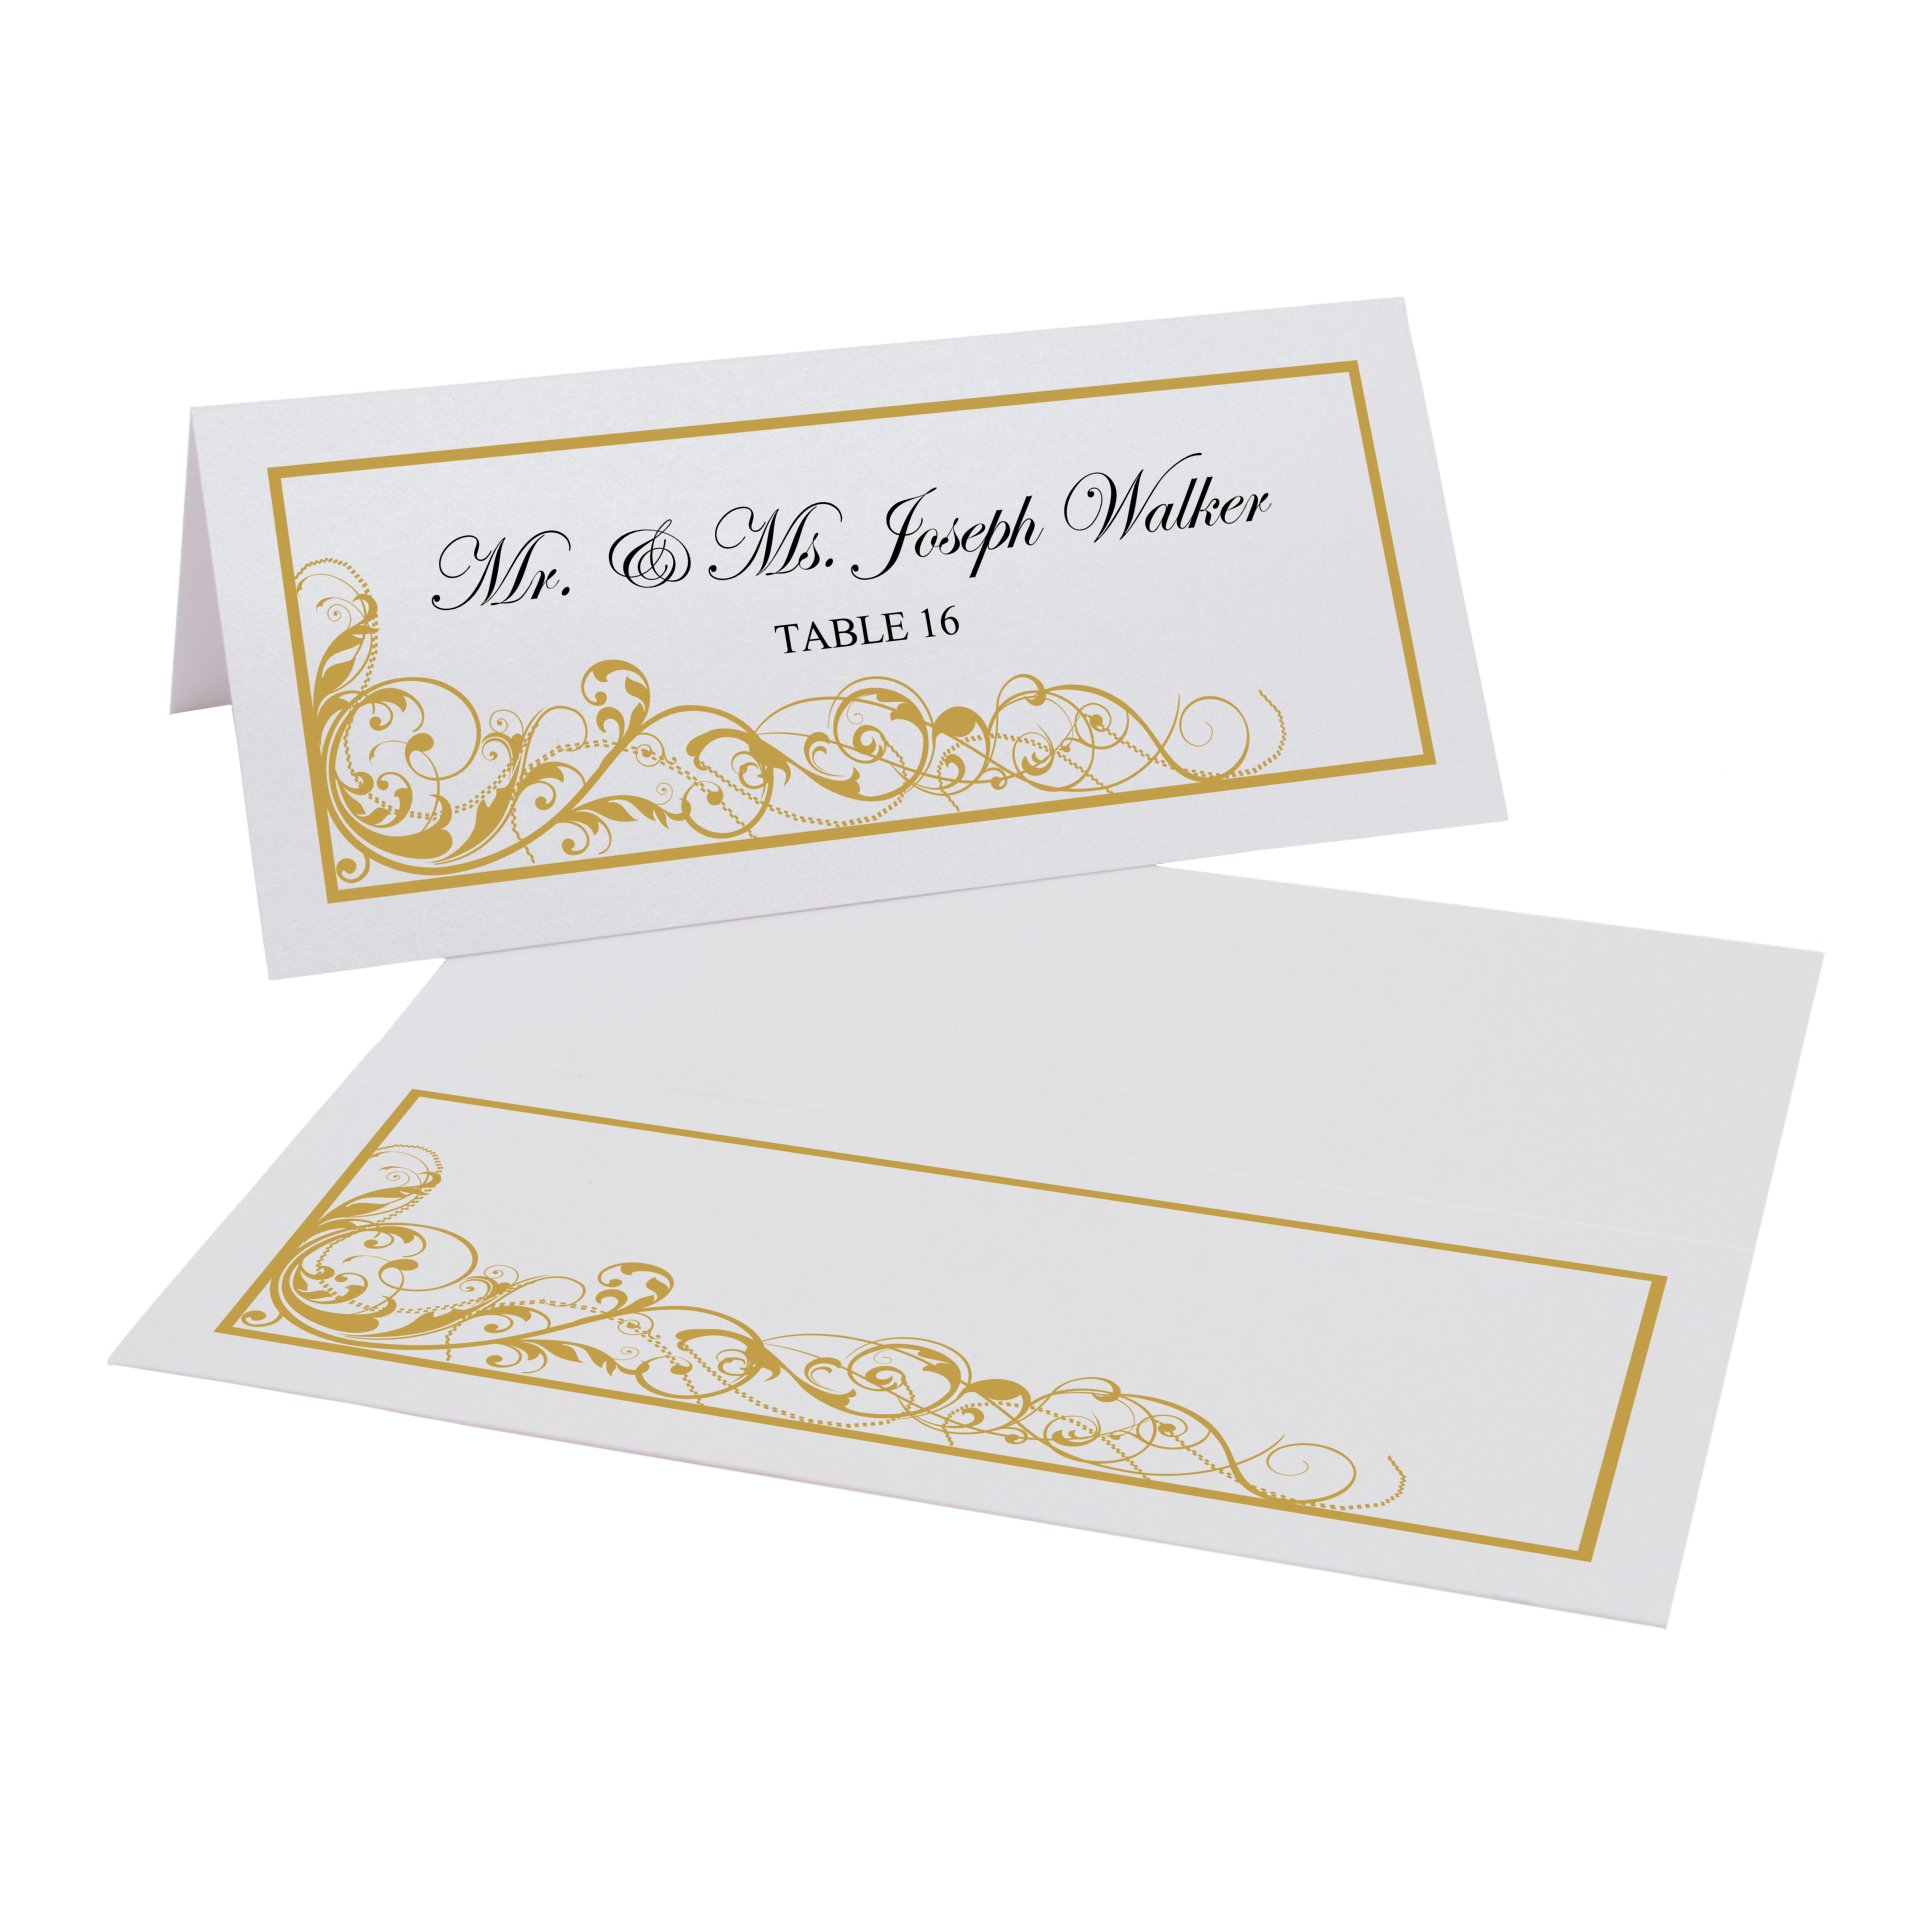 Scribble Vintage Swirl Easy Print Place Cards, Pearl White, Gold, Set of 175 (44 Sheets)